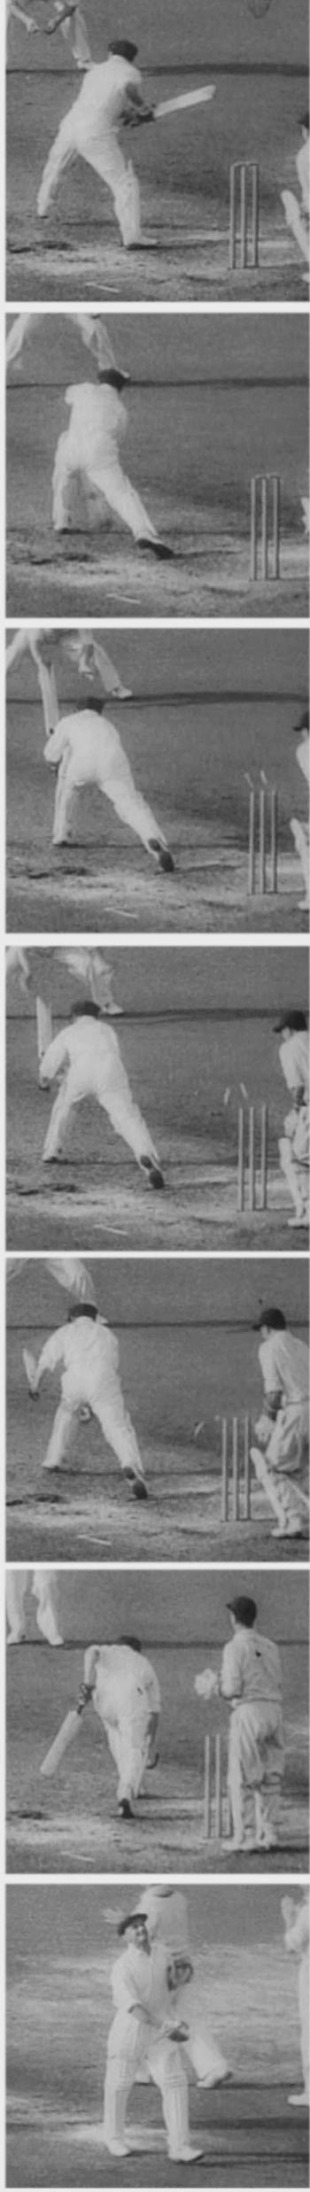 For eveything he achieved in his career, Bradman could not go out with a bang